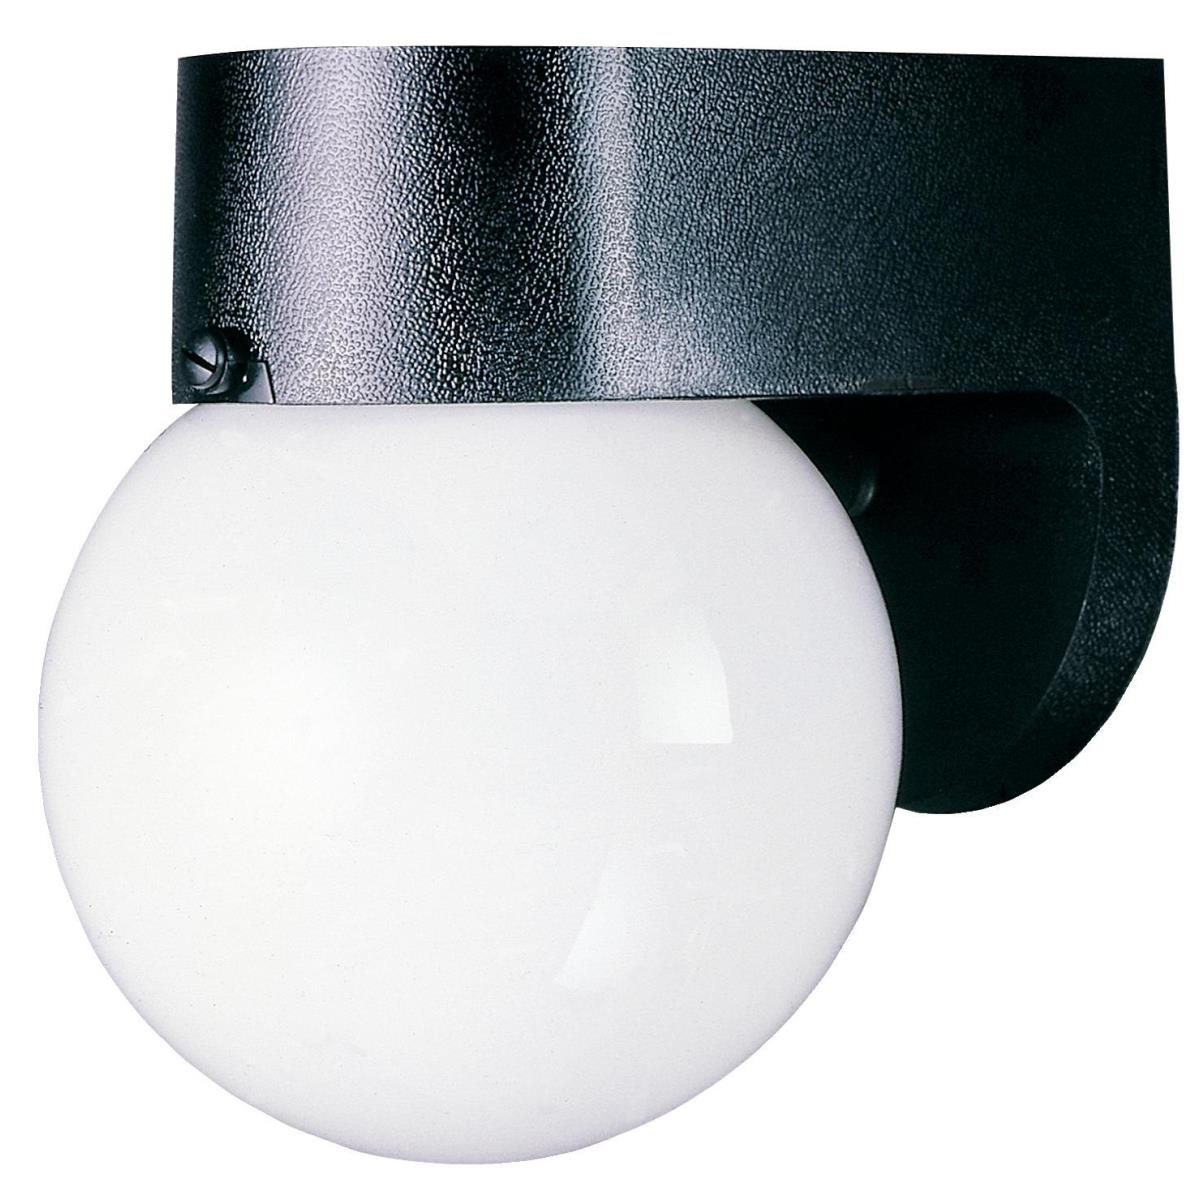 1 Light Hi-Impact Polycarbonate Wall Fixture Black Finish with White Glass Globe